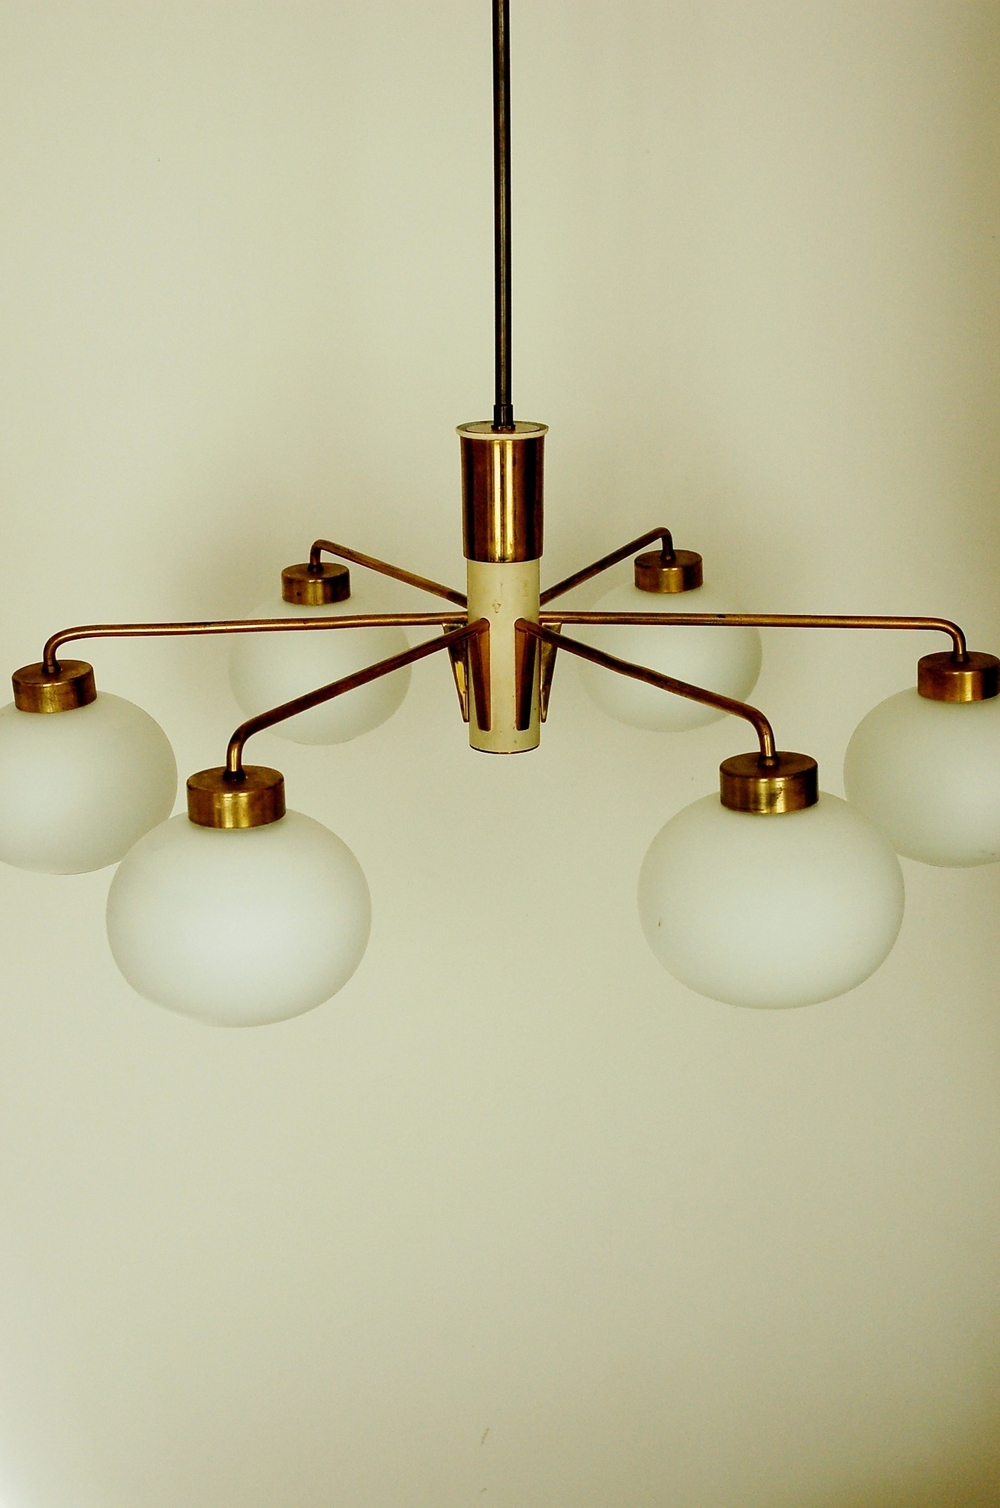 Osi Modern retro modernist stilnovo light lamp 002.JPG